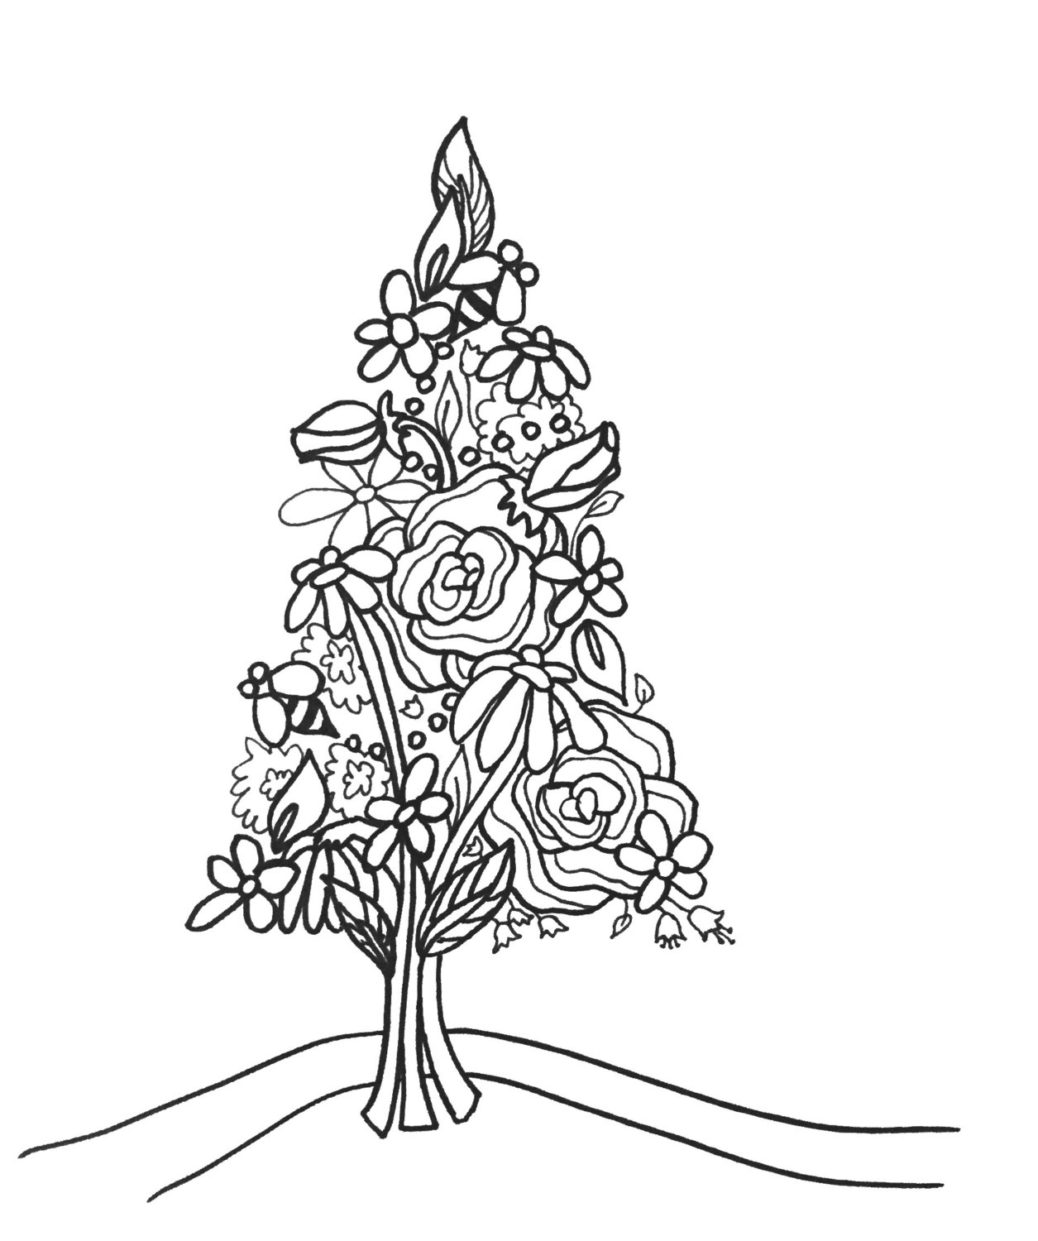 1038x1241 trees coloringpages original art coloring book for tree